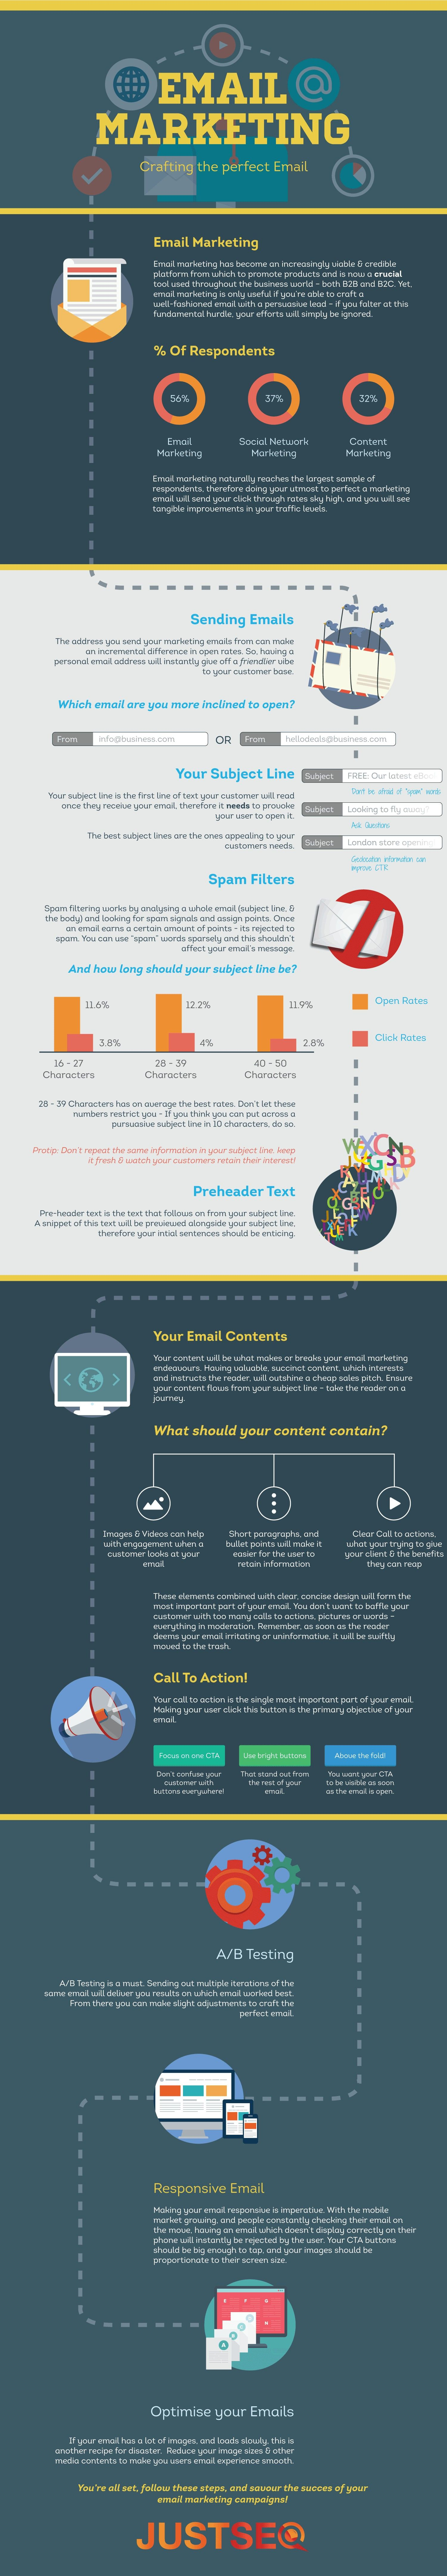 Email Marketing; Crafting the Perfect Email